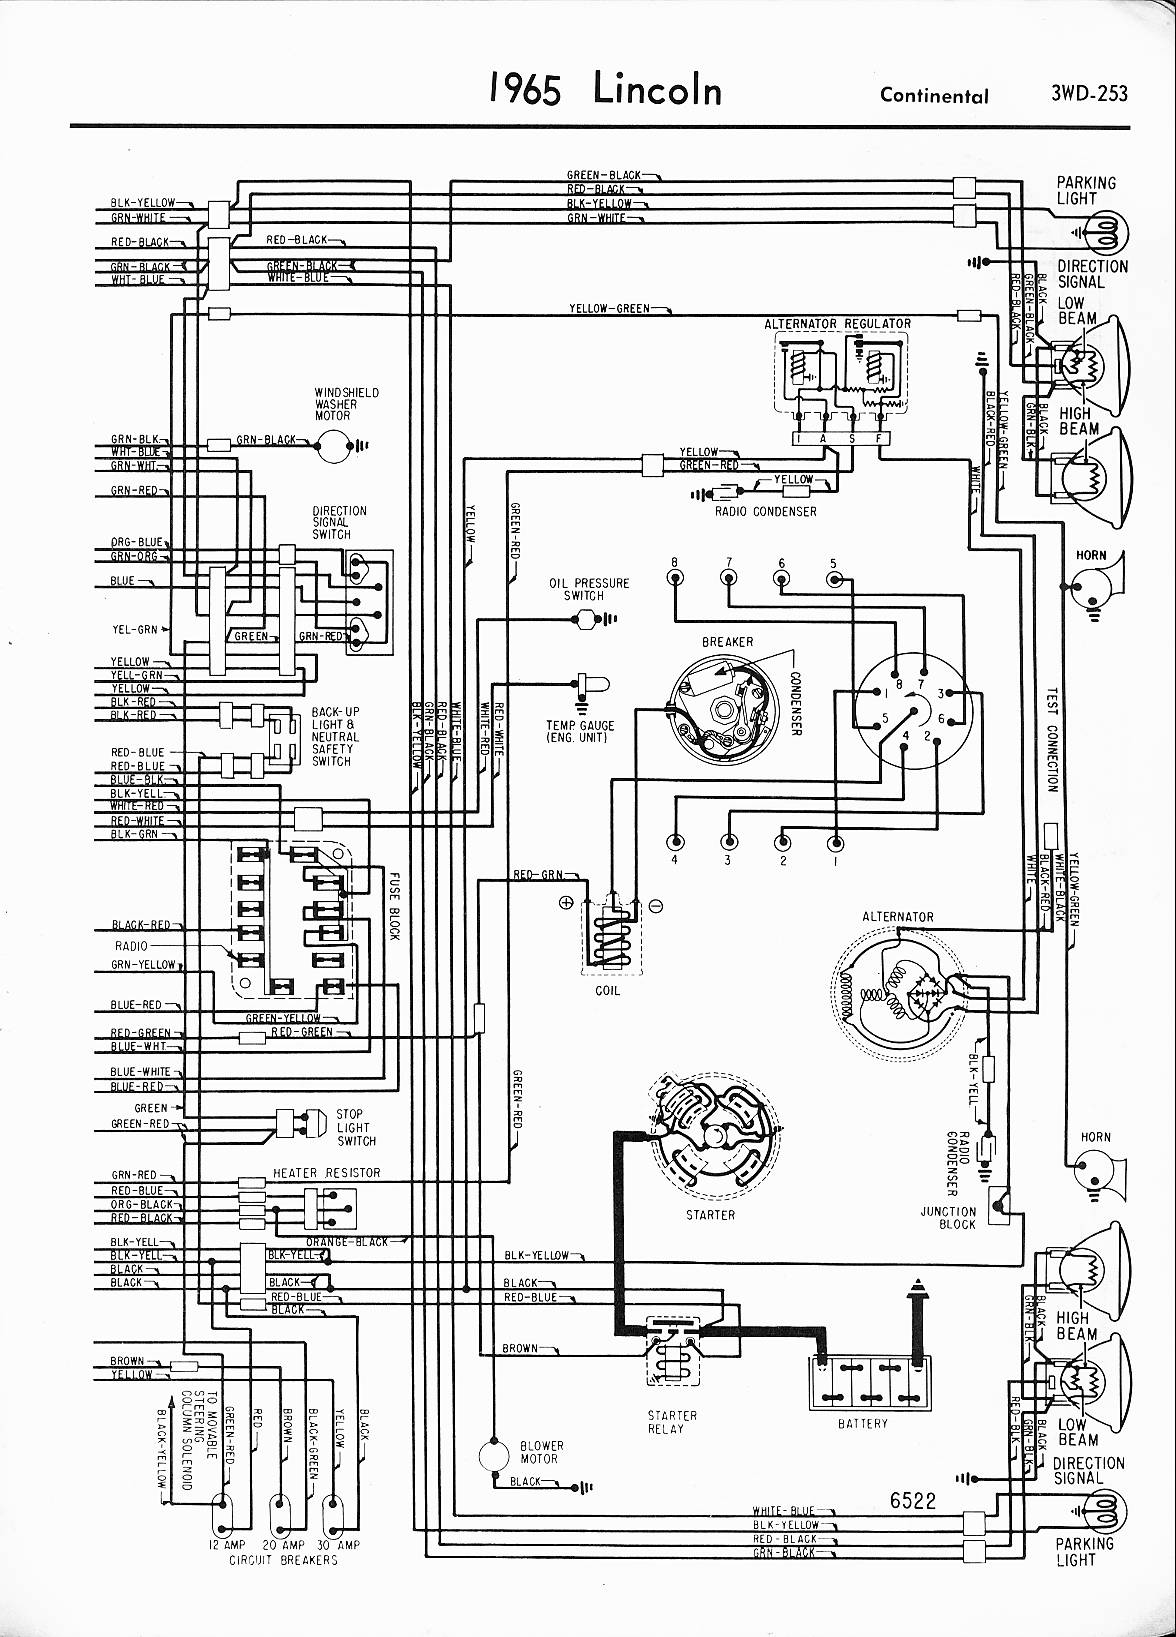 1969 Lincoln Continental Fuse Box Simple Guide About Wiring Diagram 1999 Mercury Cougar Diagrams 1957 1965